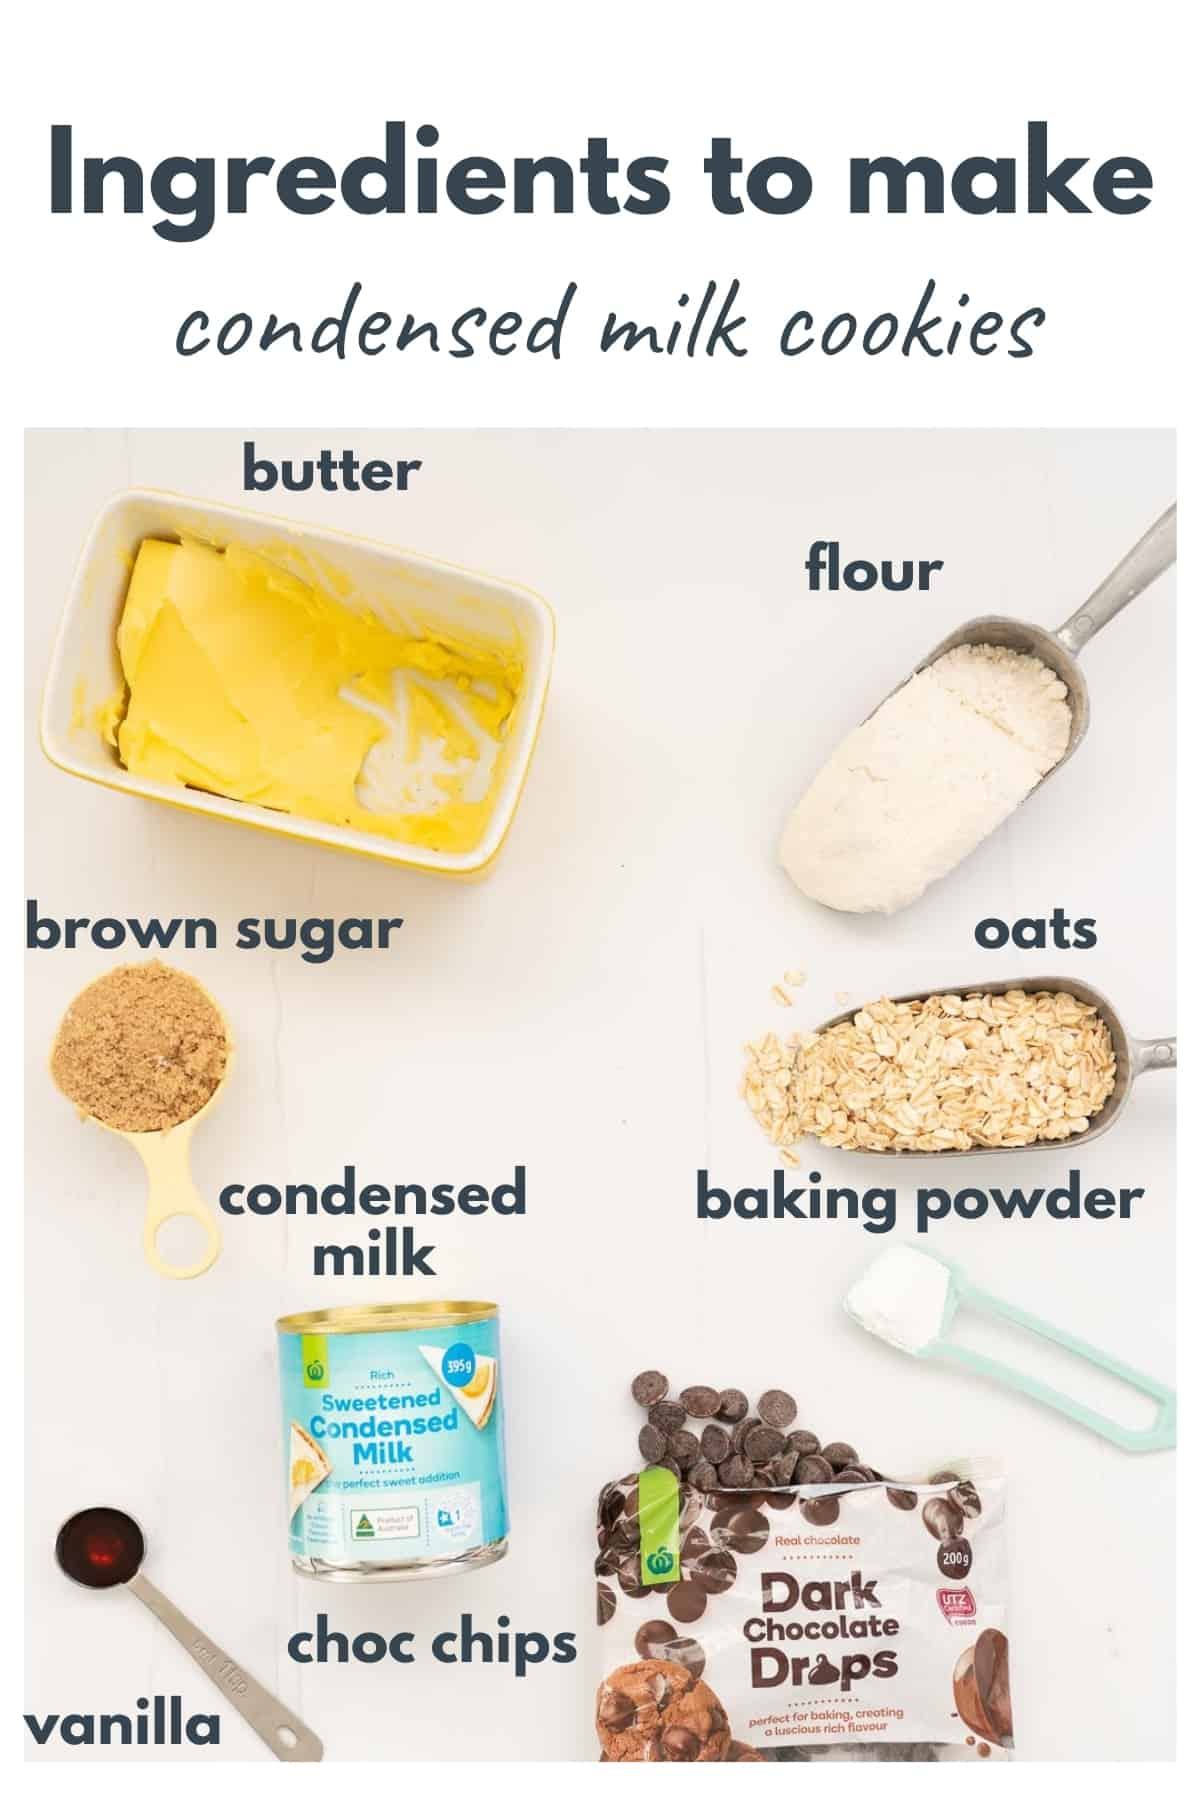 The ingredients to make condensed milk cookies laid out on a counter top with text overlay.